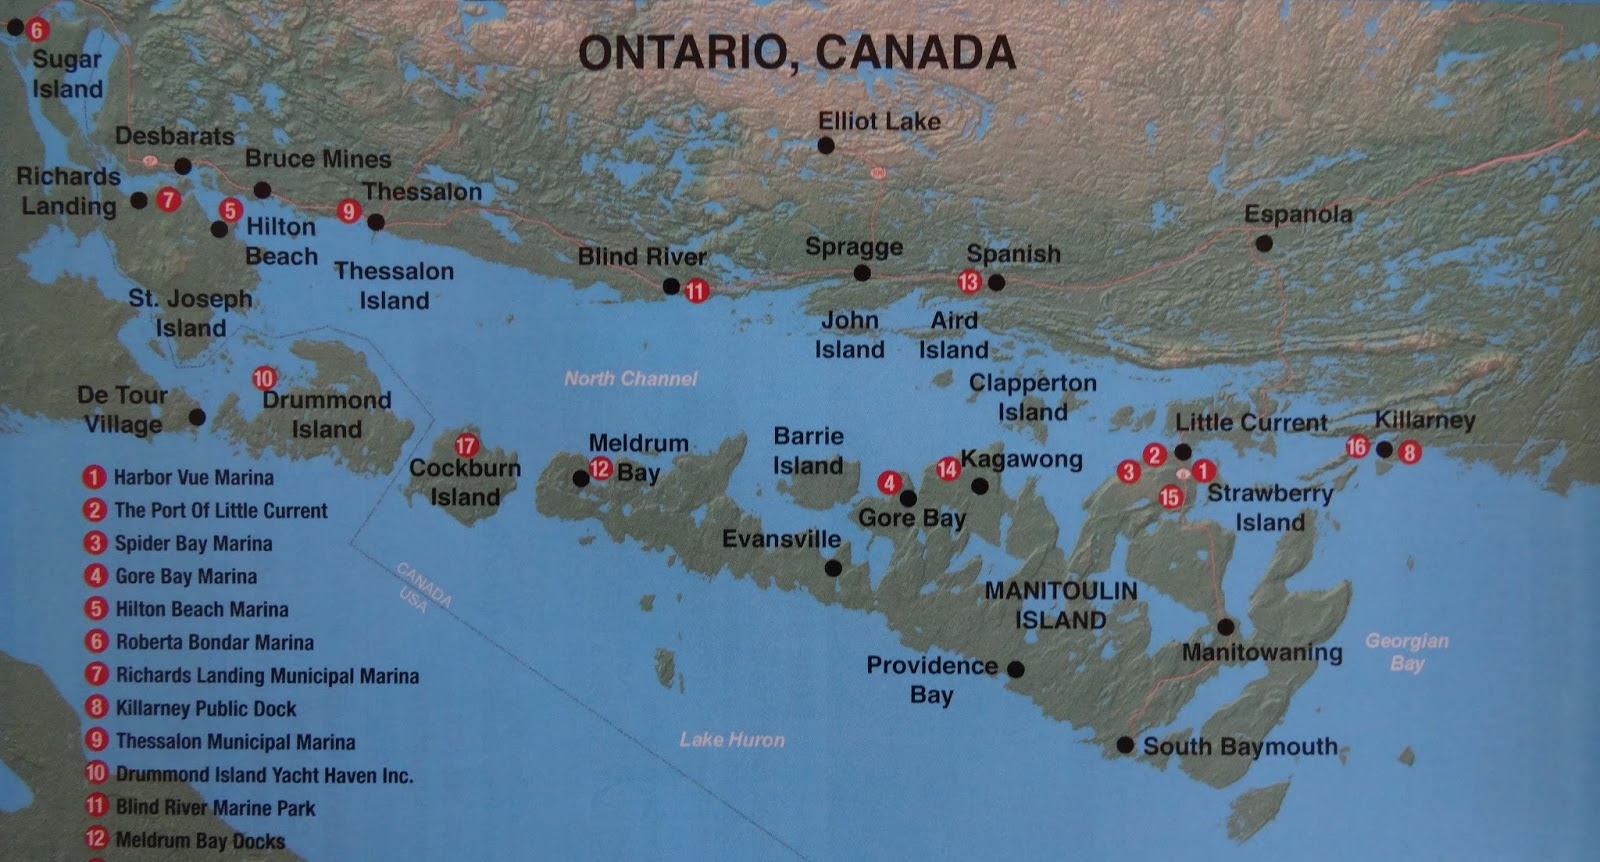 kitimat chat sites The tug continued on its voyage to kitimat, british columbia, using its  field  phase: a team of investigators examines the occurrence site and.